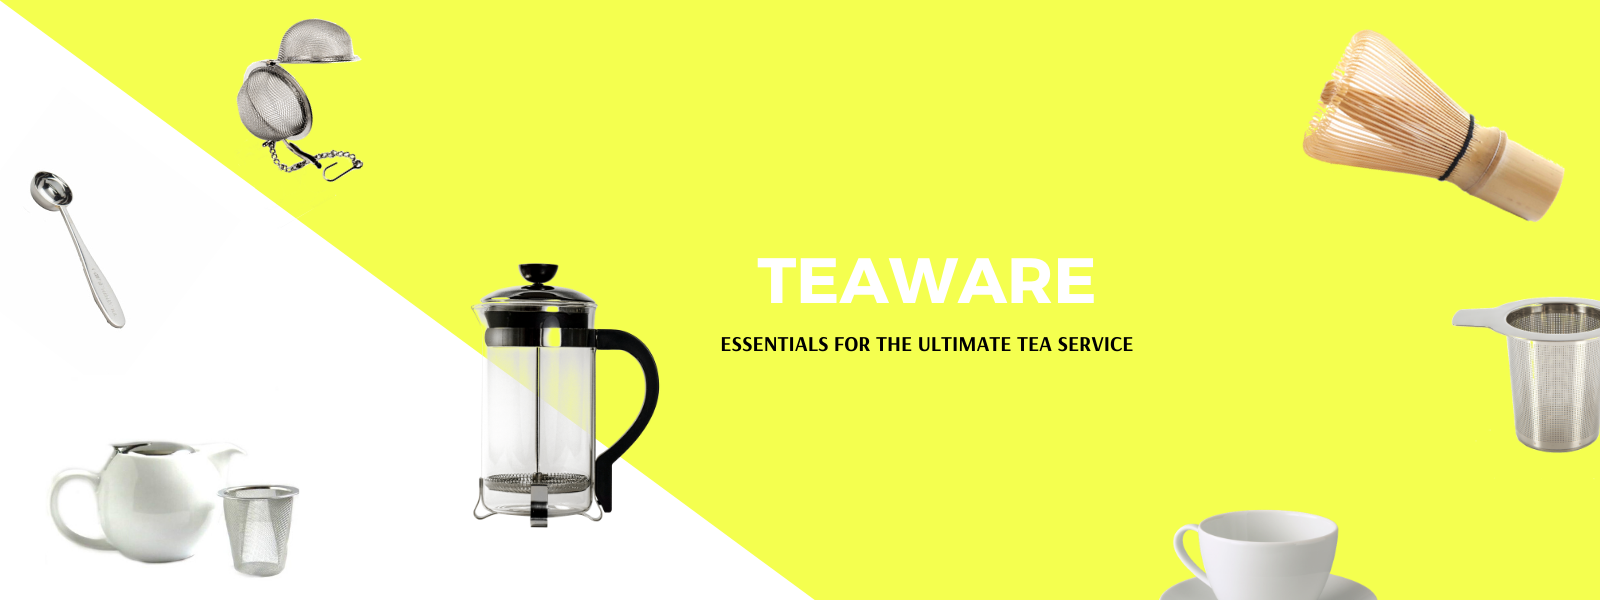 Gifts & Teaware